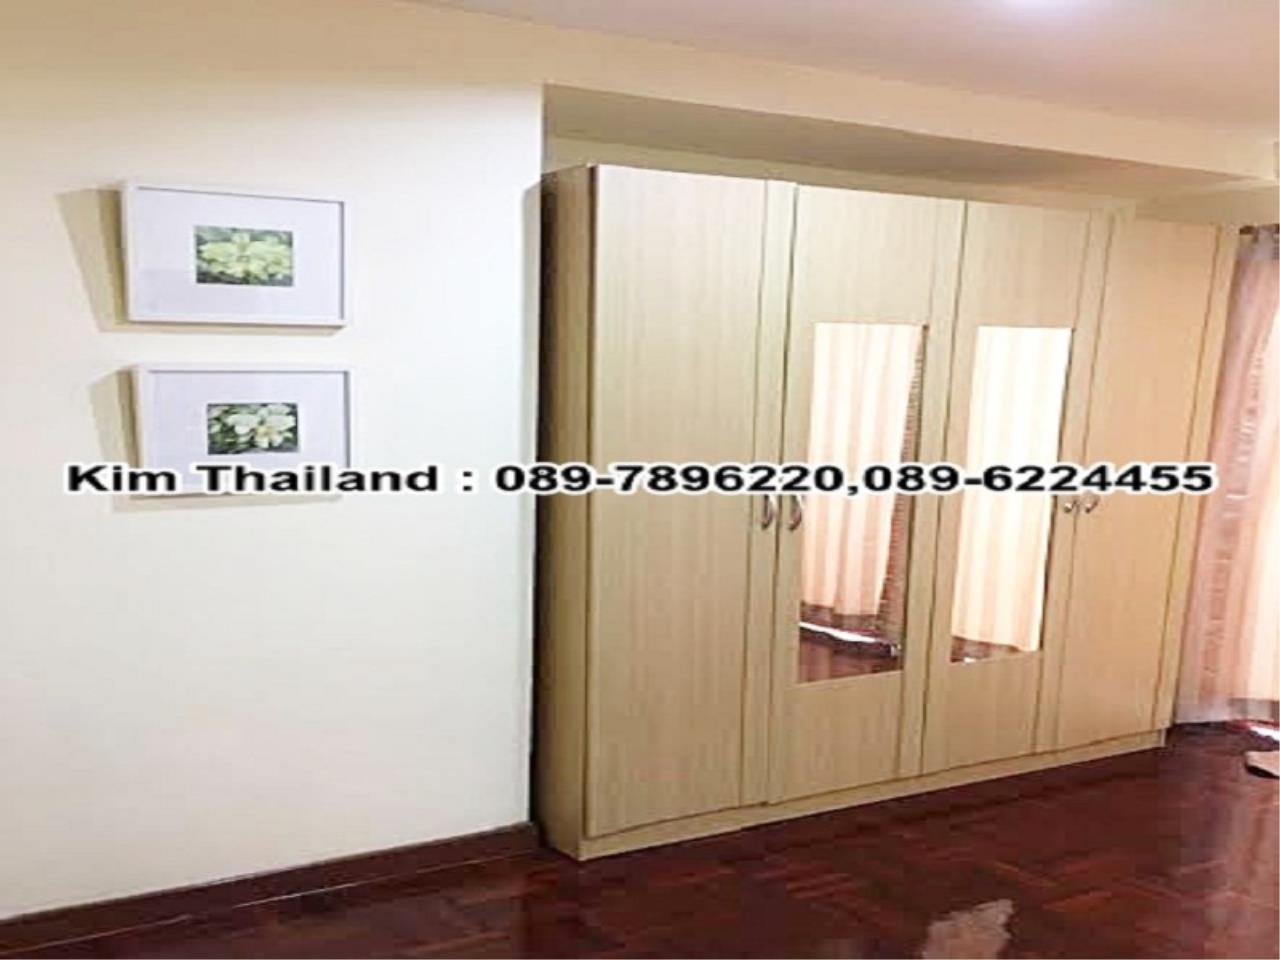 BKKcondorental Agency's For rent, Condo Saranjai Mansion. Area 63 sq.m. 1 bedroom. Rent 20,000baht/month 2